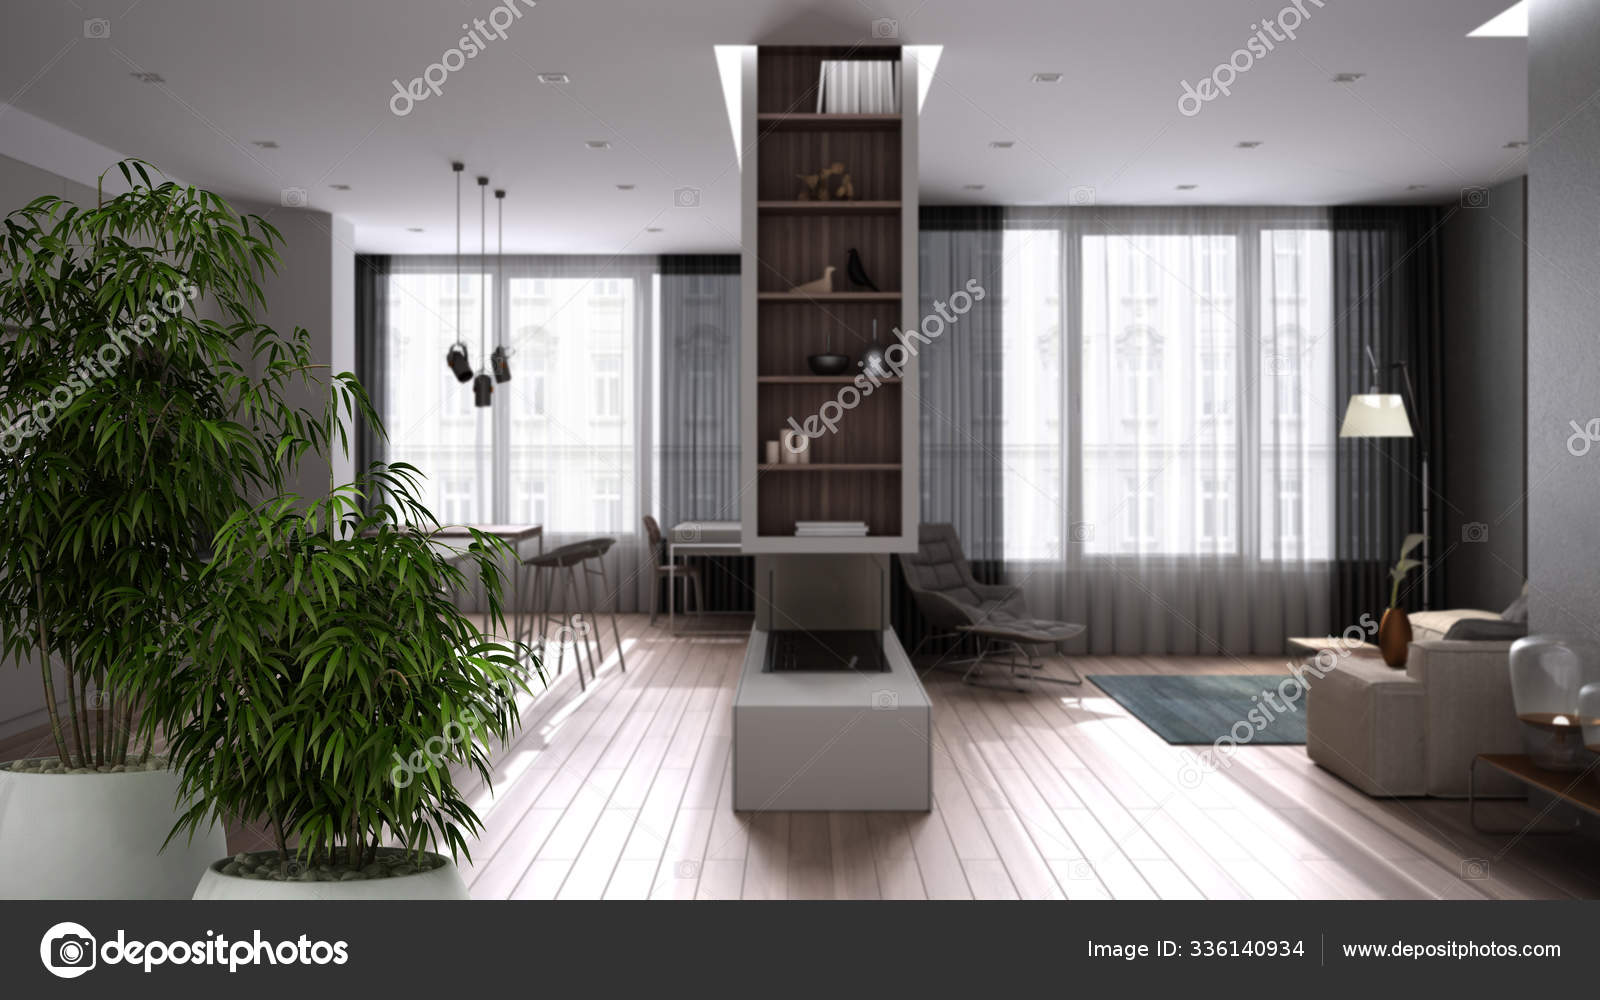 Zen Interior With Potted Bamboo Plant Natural Interior Design Concept Modern Luxury White And Wooden Kitchen Living Room With Panoramic Windows Minimalist Architecture Concept Stock Photo C Archiviz 336140934